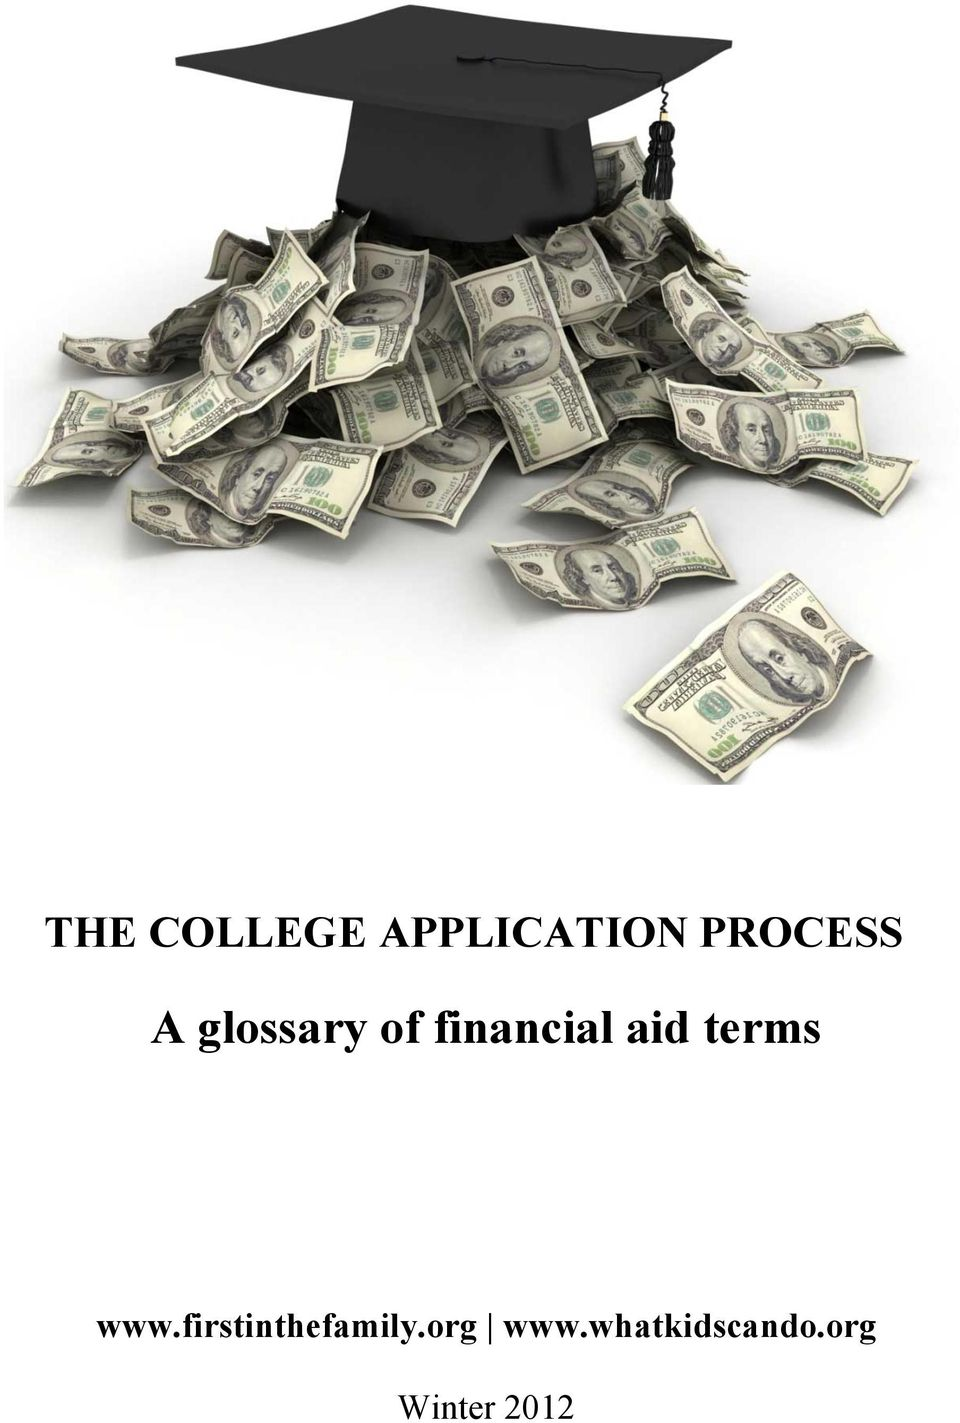 financial aid terms www.